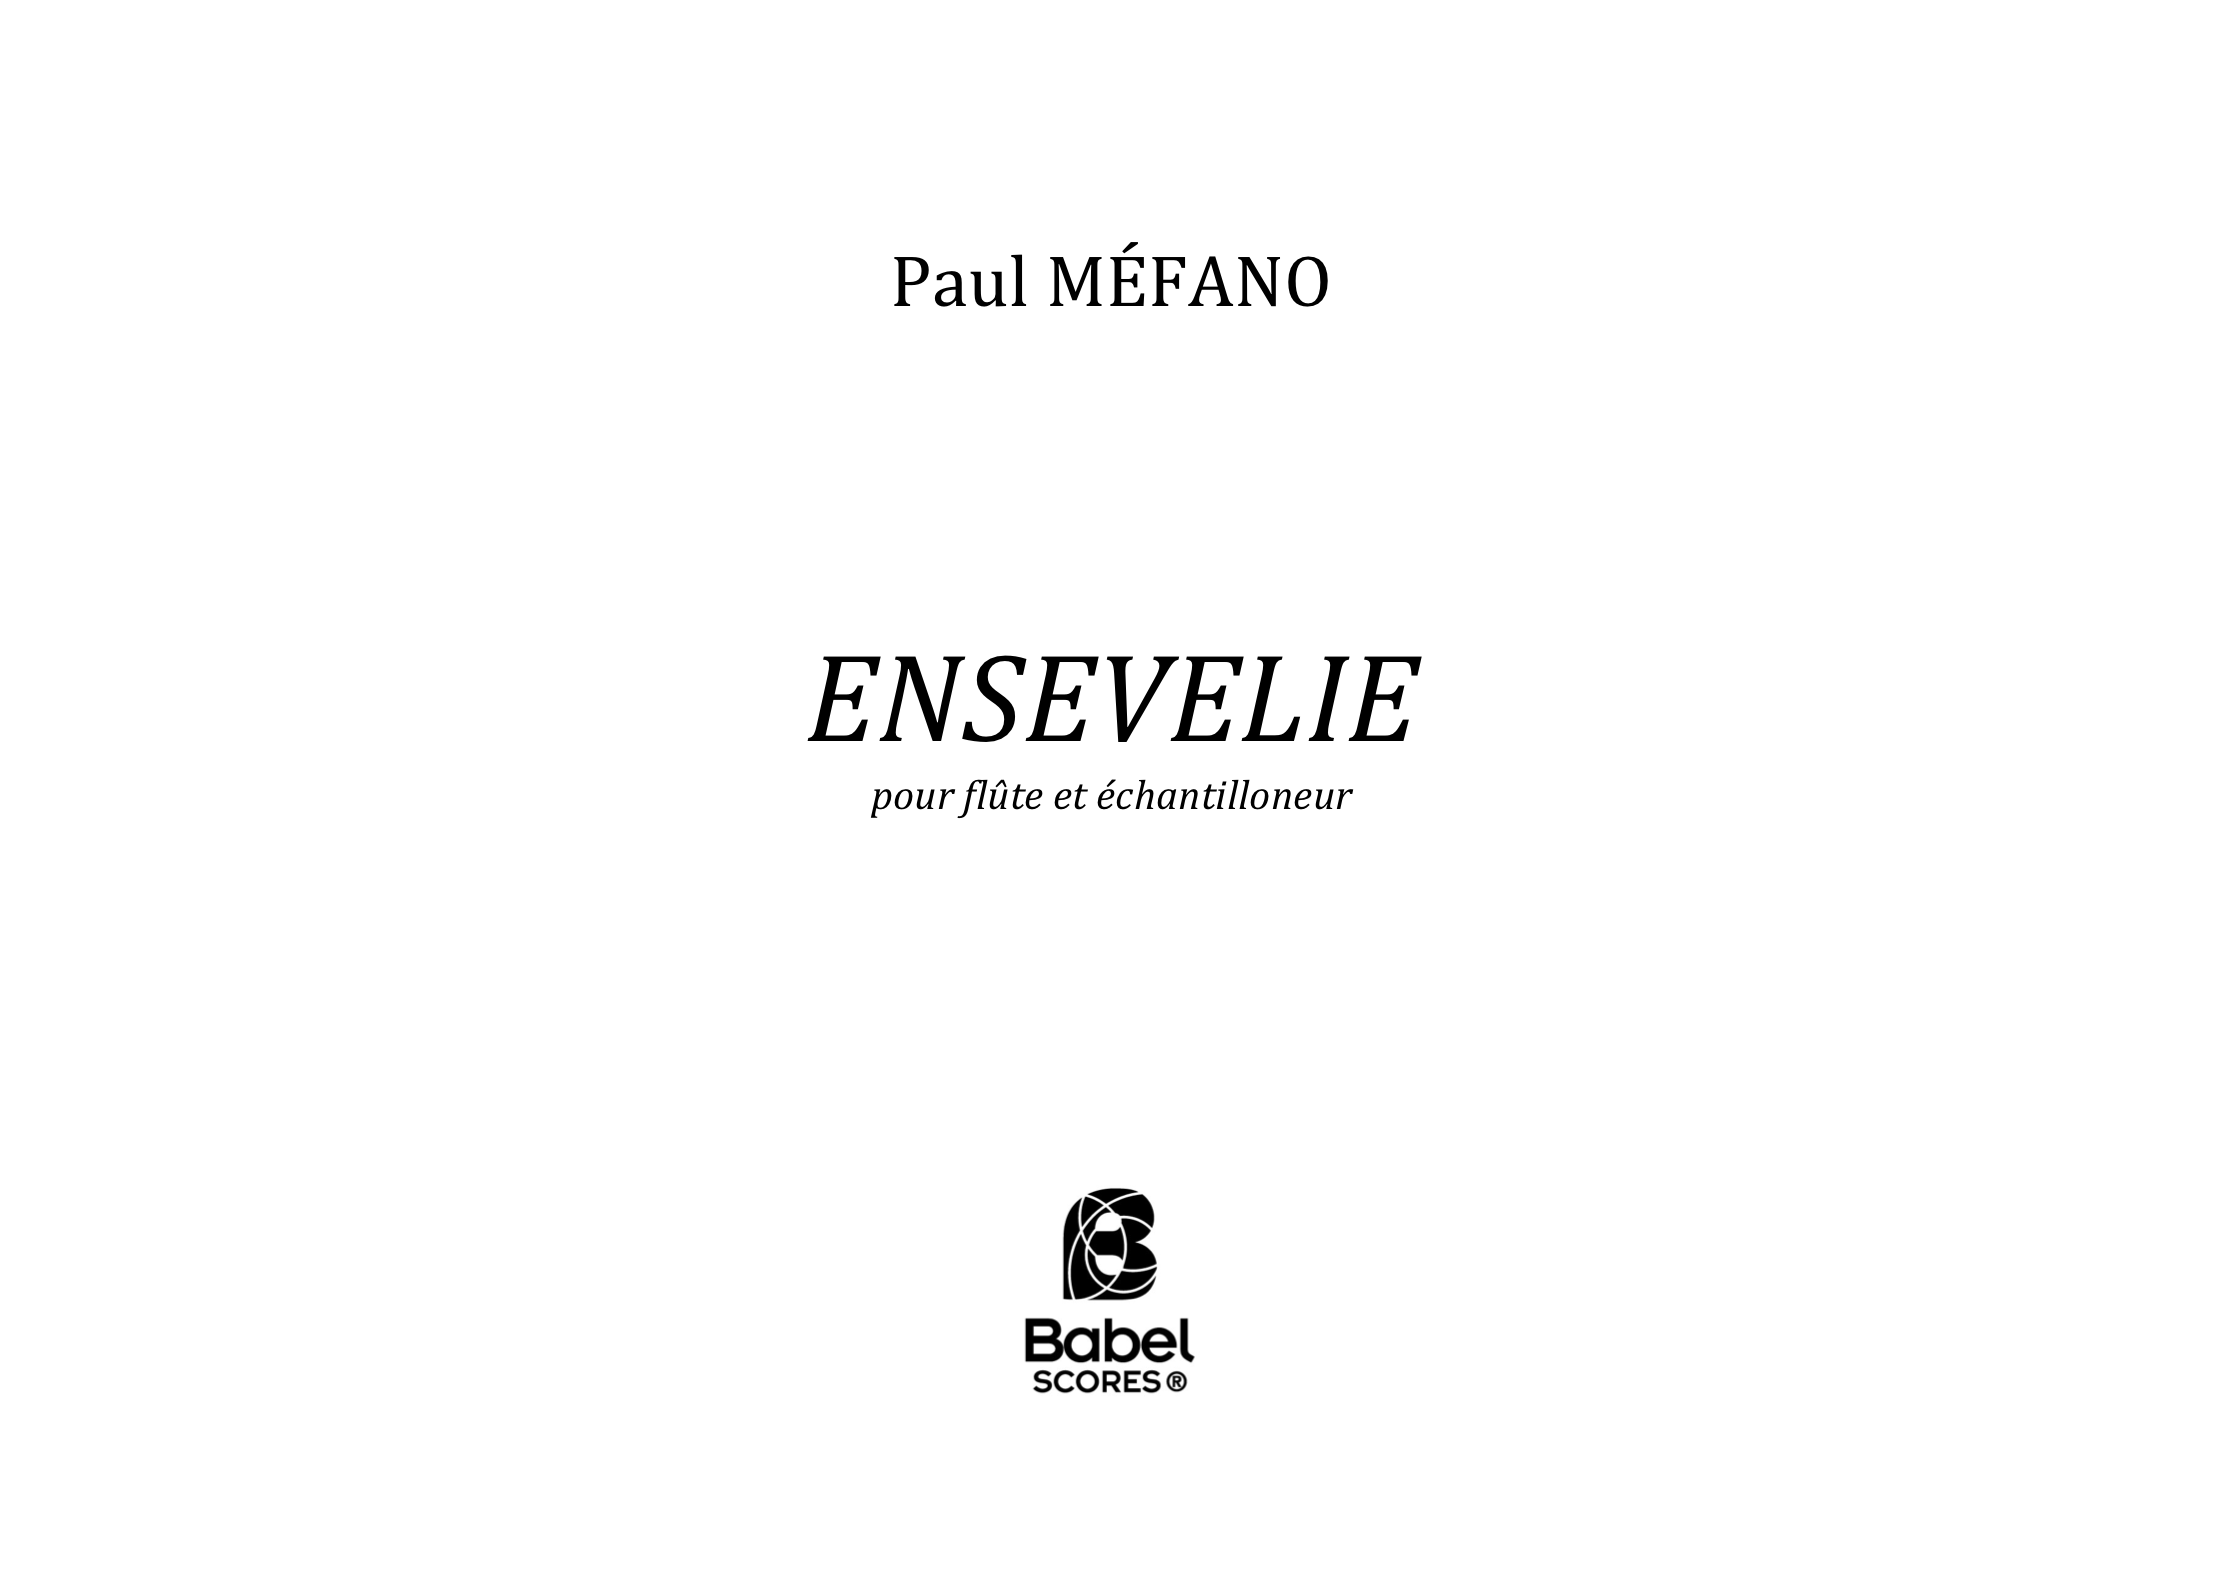 EnsevelieV1_A4